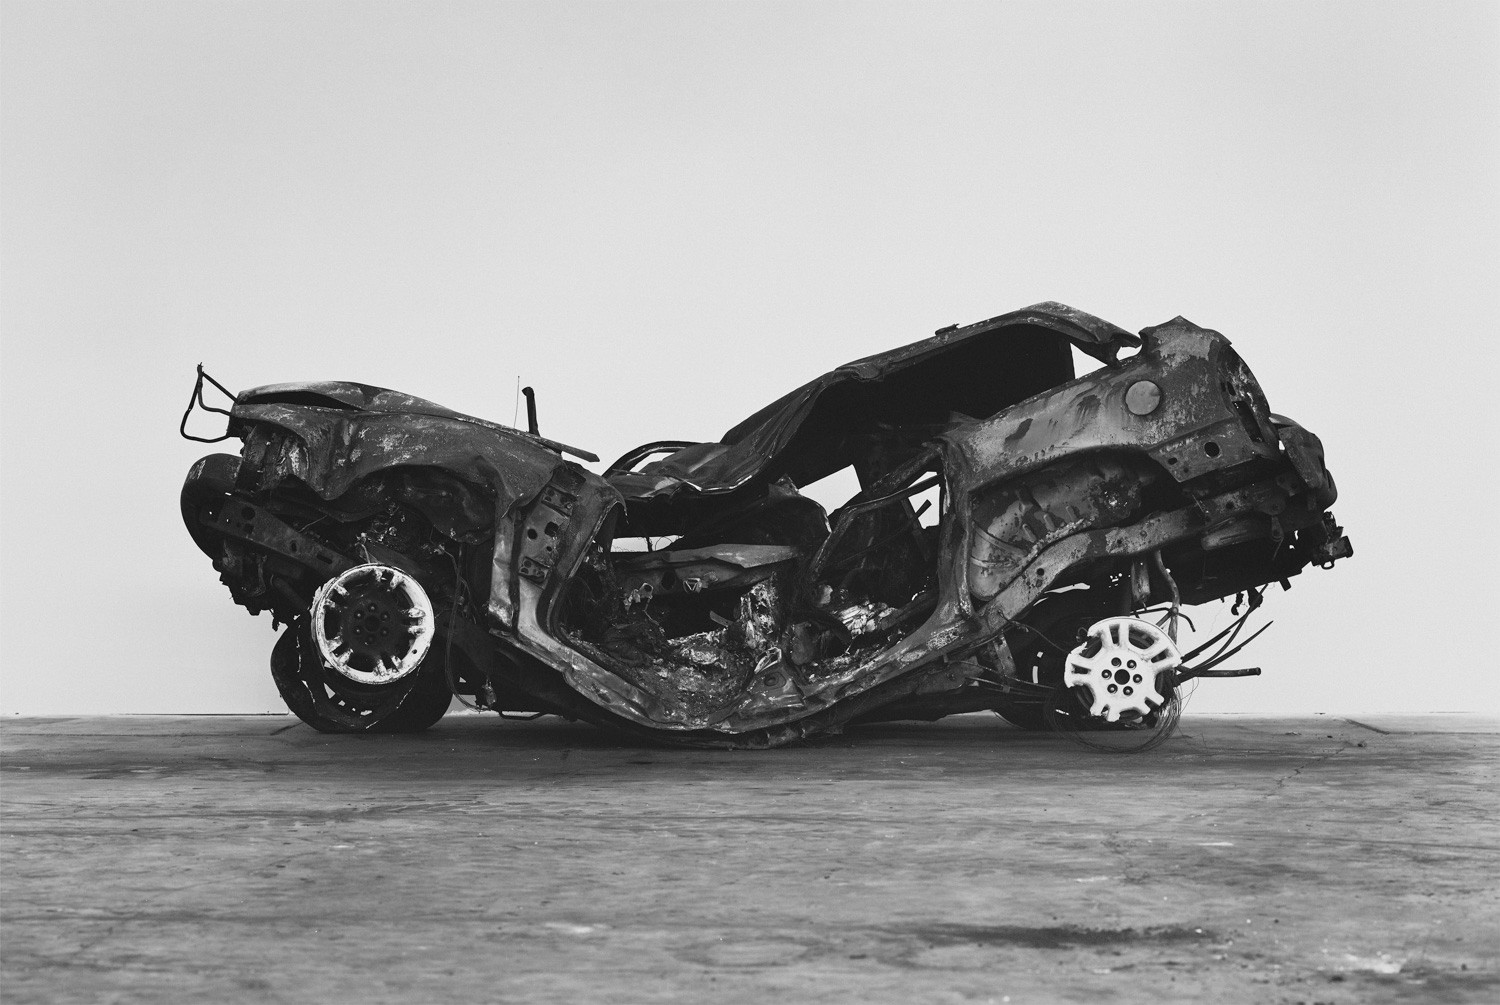 Richard Learoyd, Crashed, burned and rolled (1), 2017